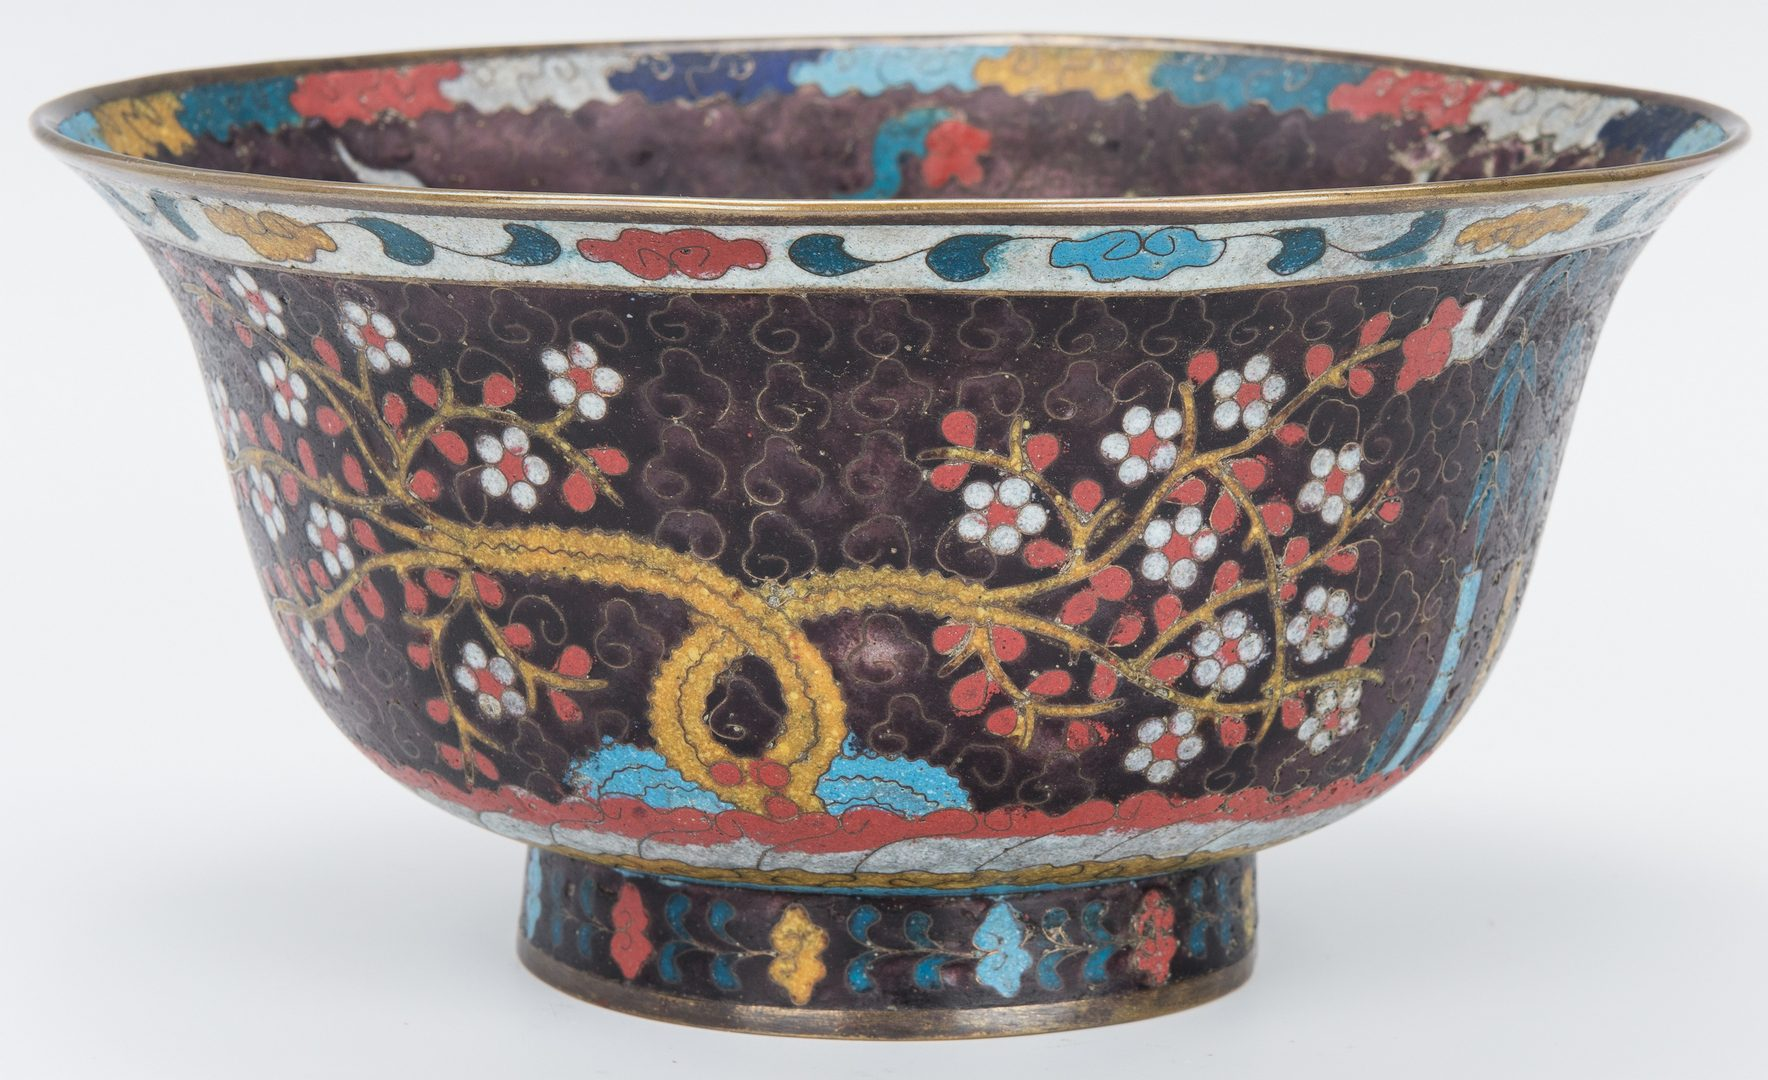 Lot 2: Cloisonne bowl with Horses, Urn, Box, 3 items